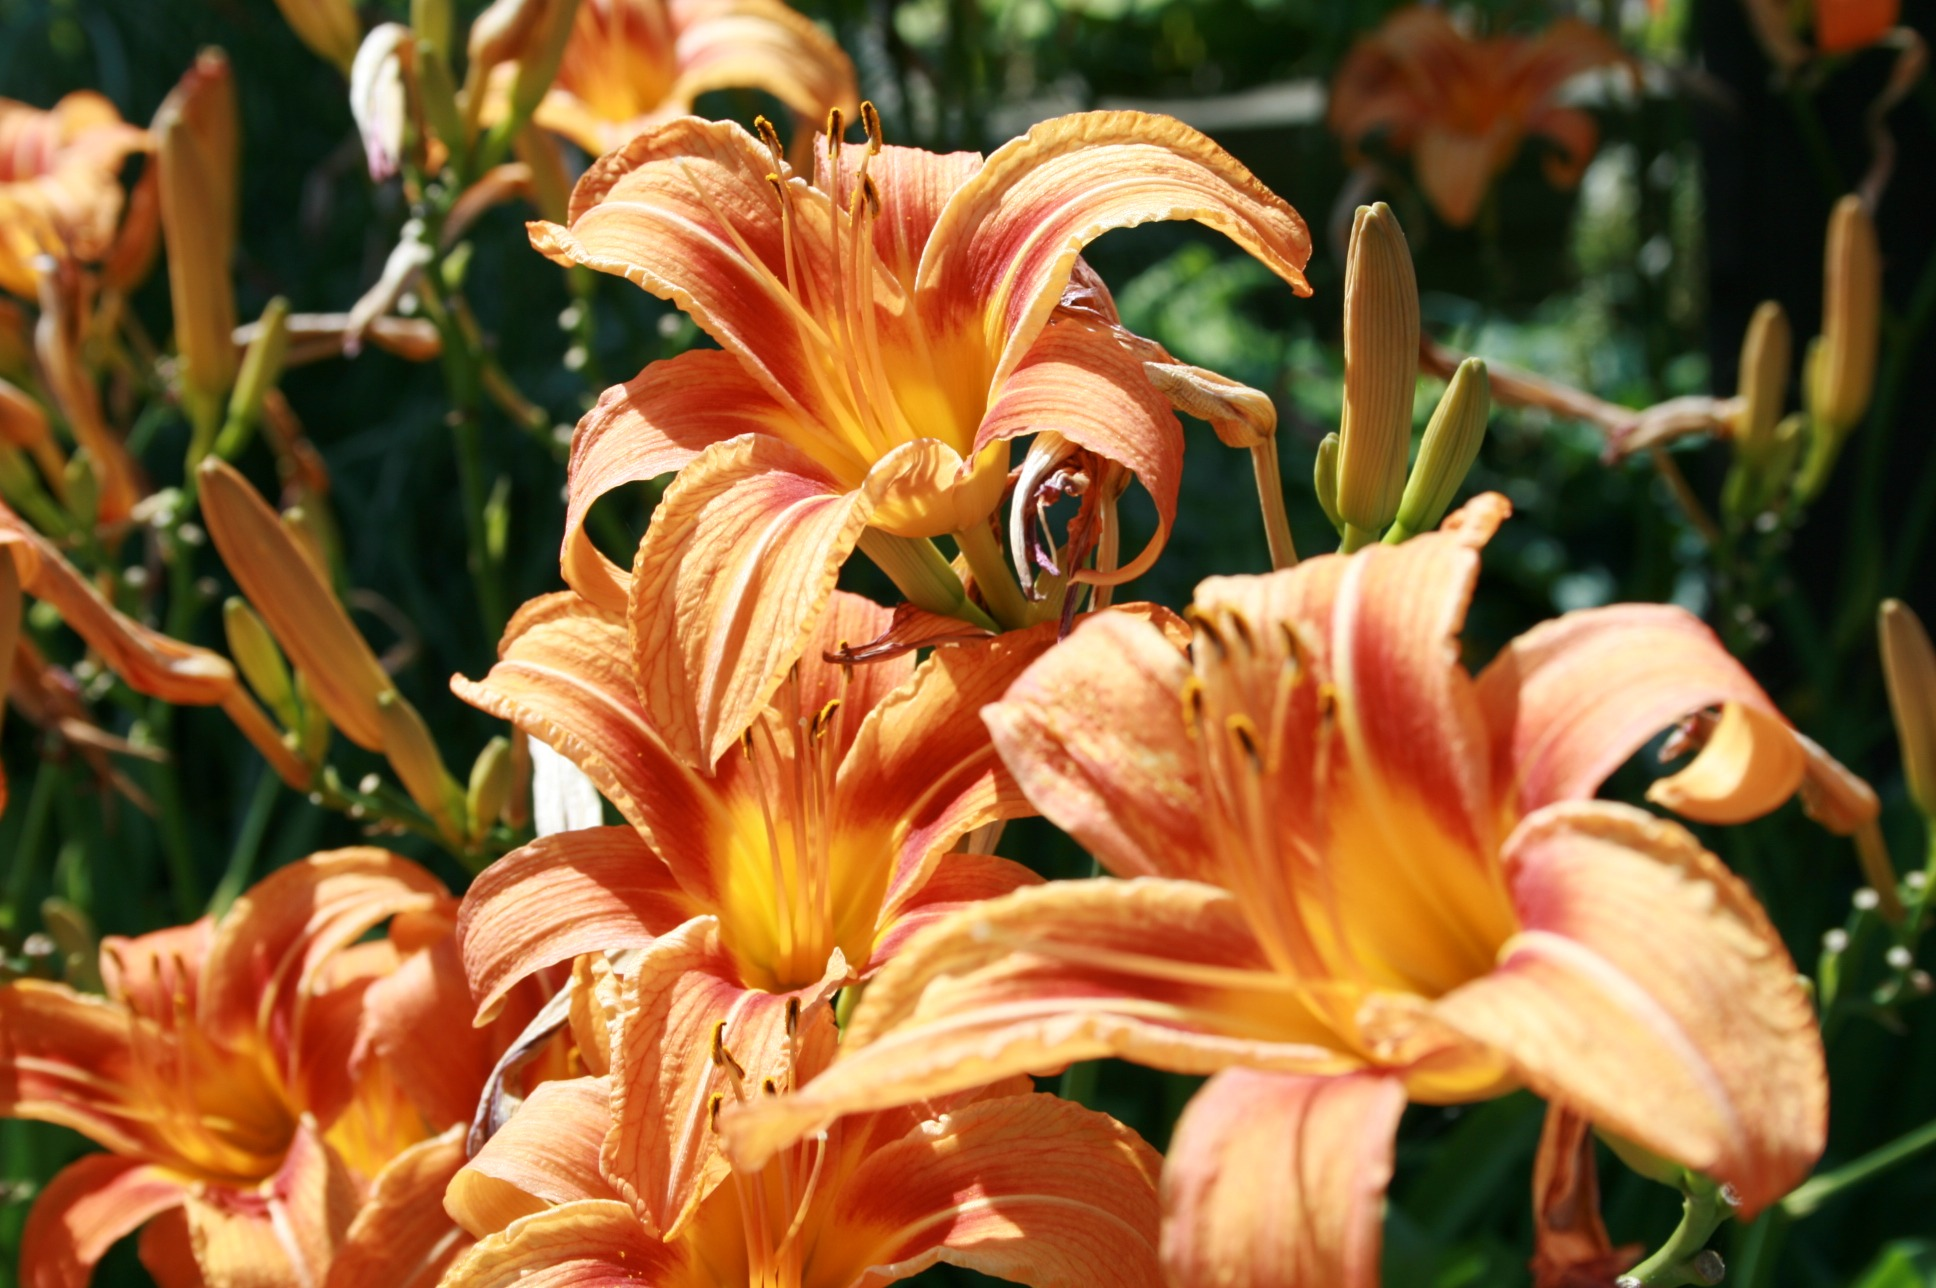 lilies are toxic to pets